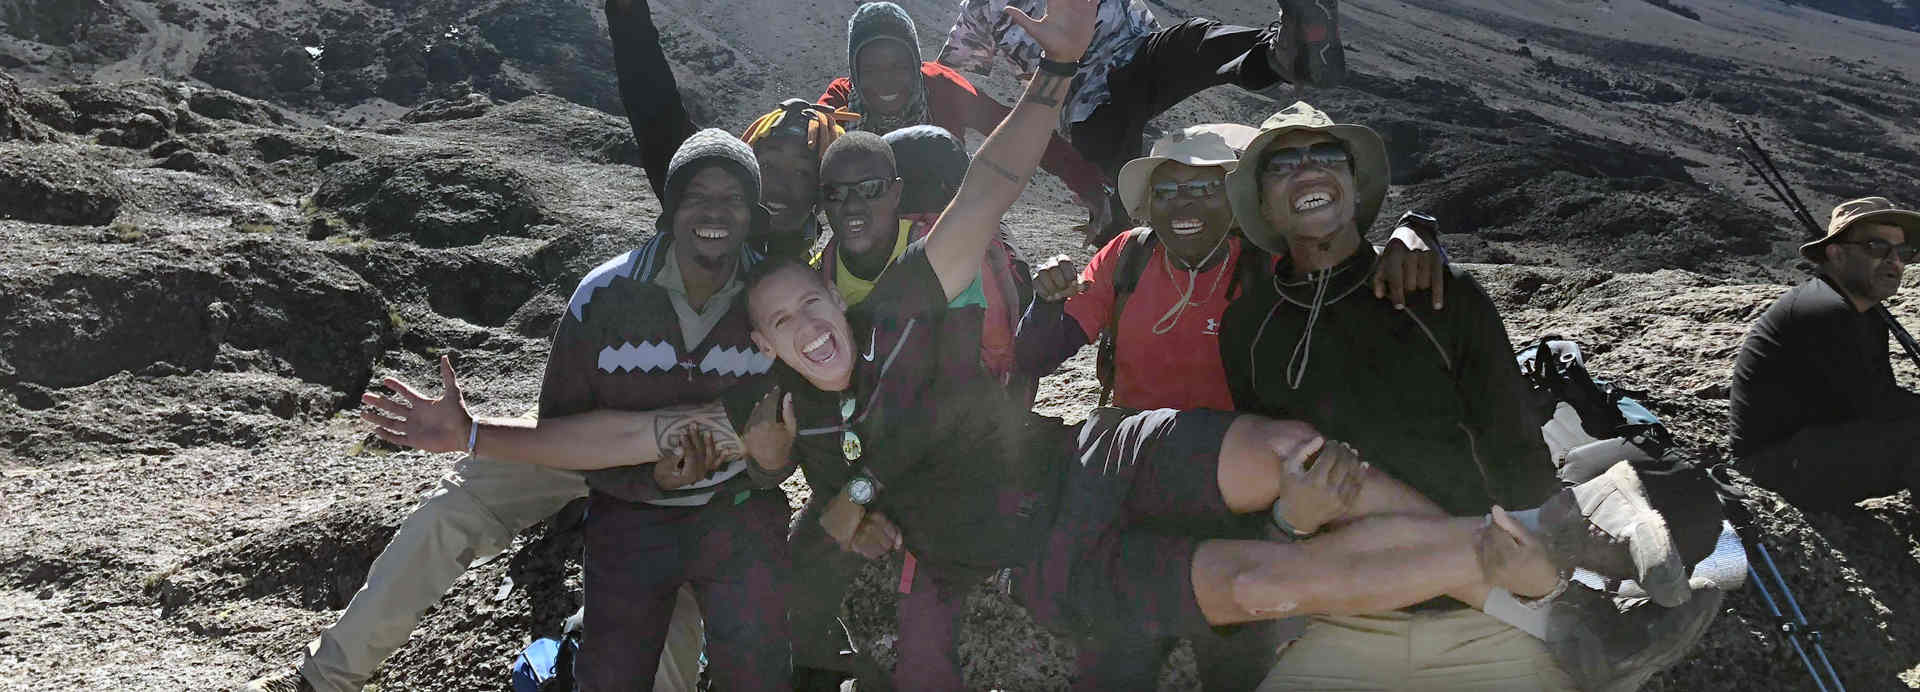 Scott Henley takes on Kilimanjaro with Ultra Adventures